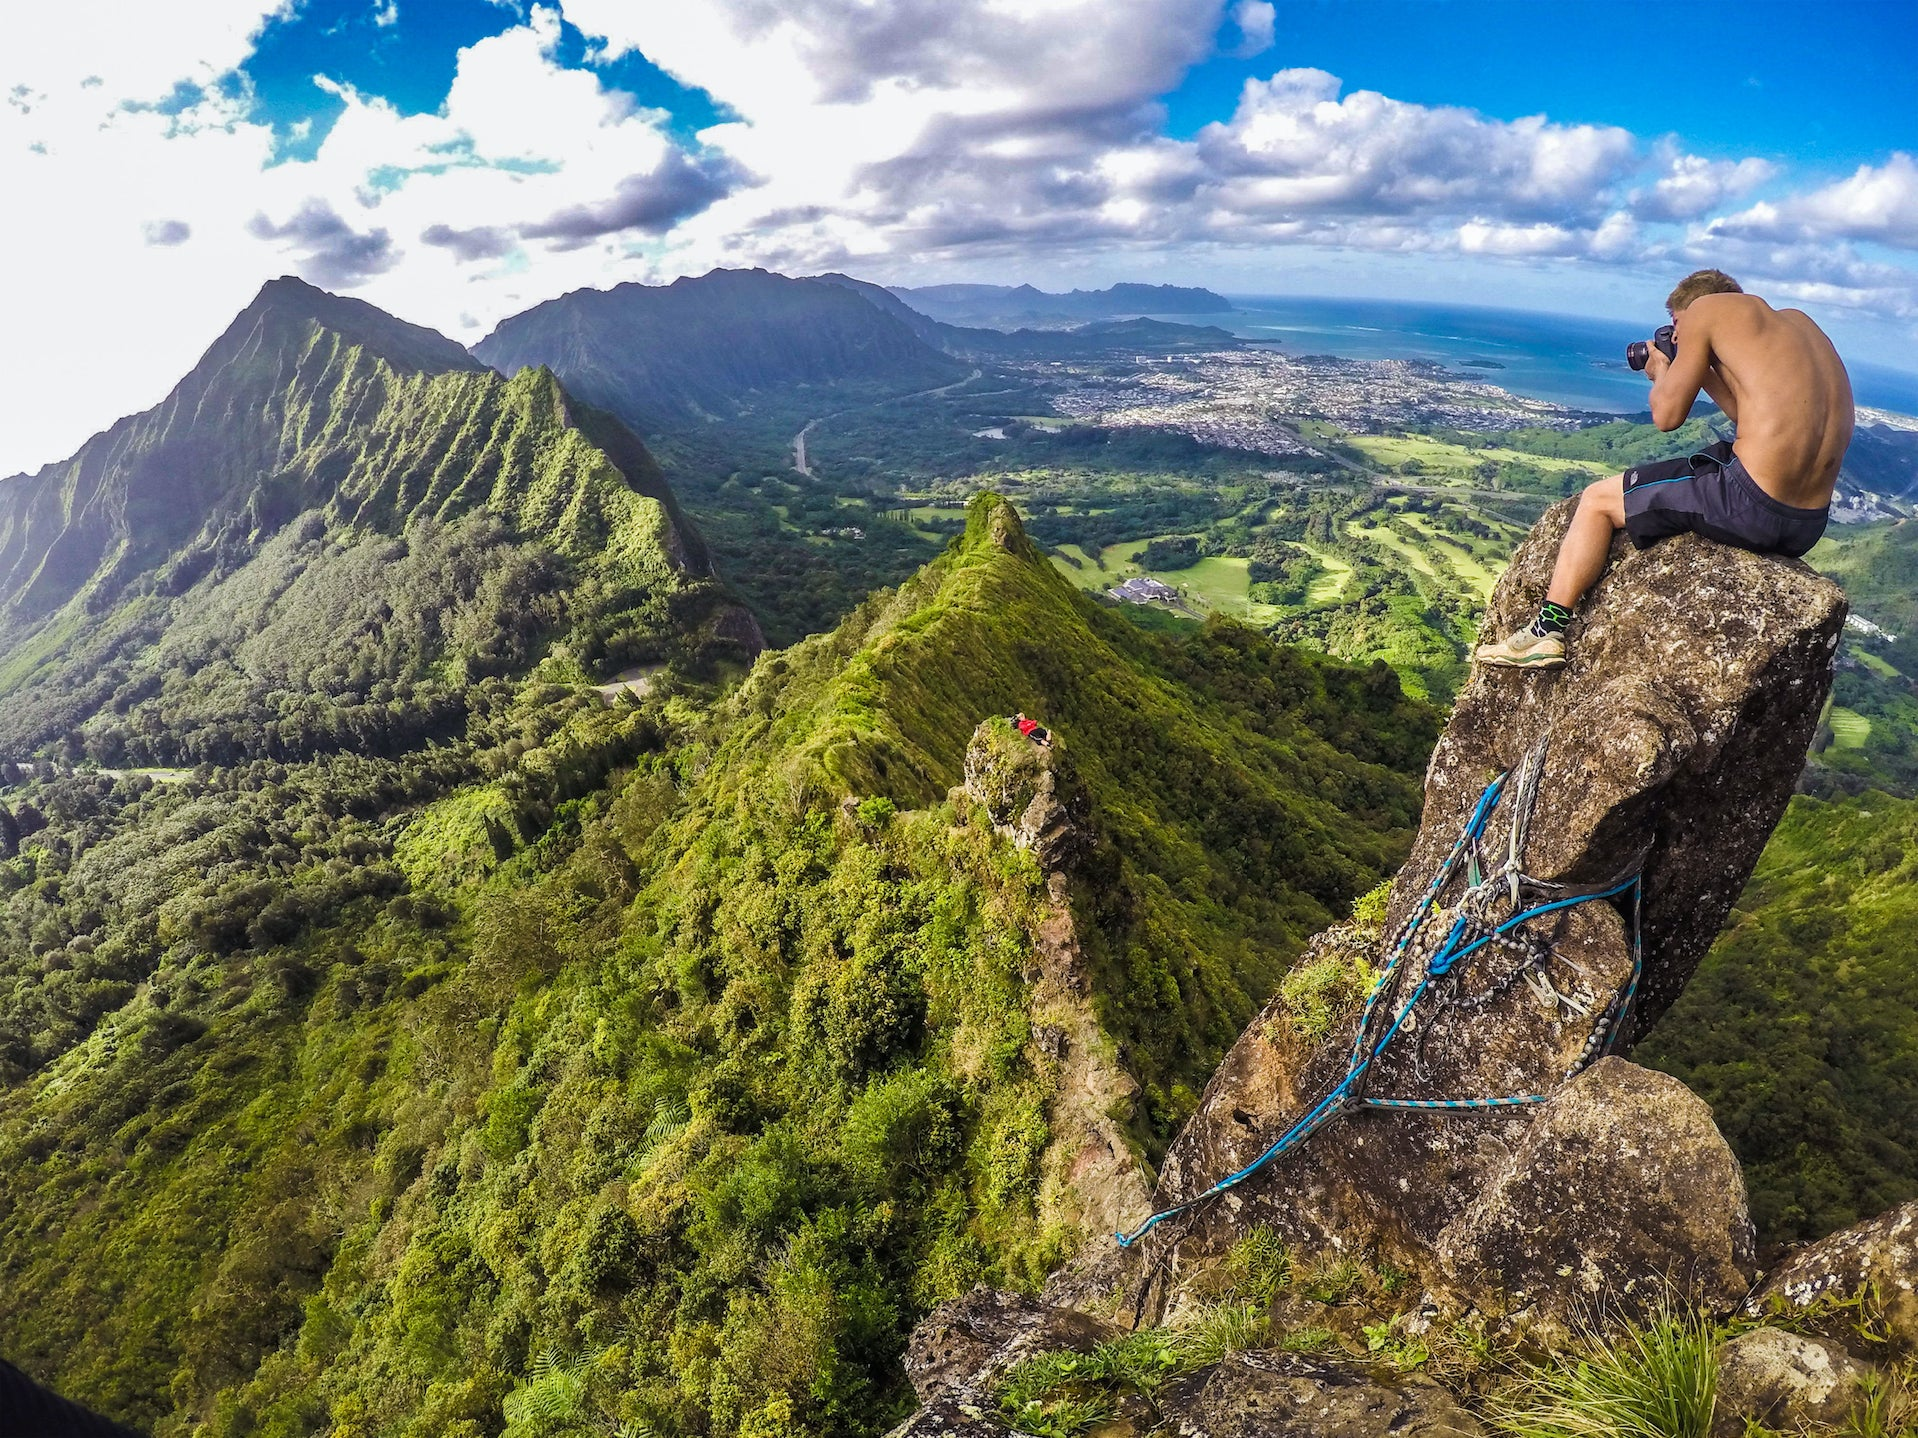 Top of pali notches, chimney. Oahu, Hawaii